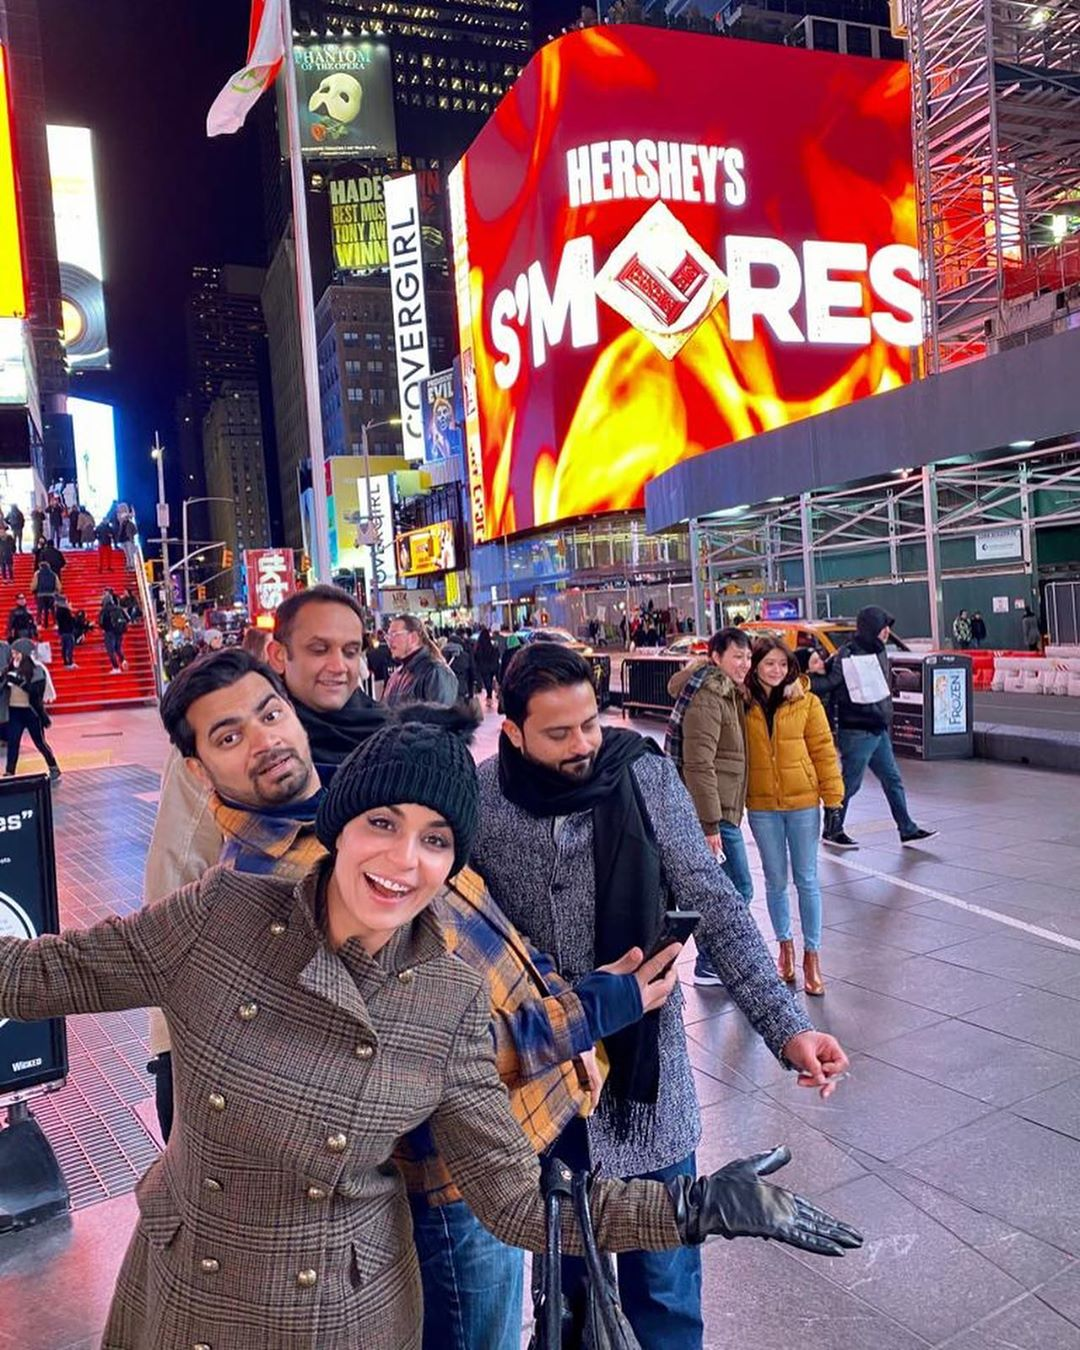 New Pictures of Actress Meera from New York